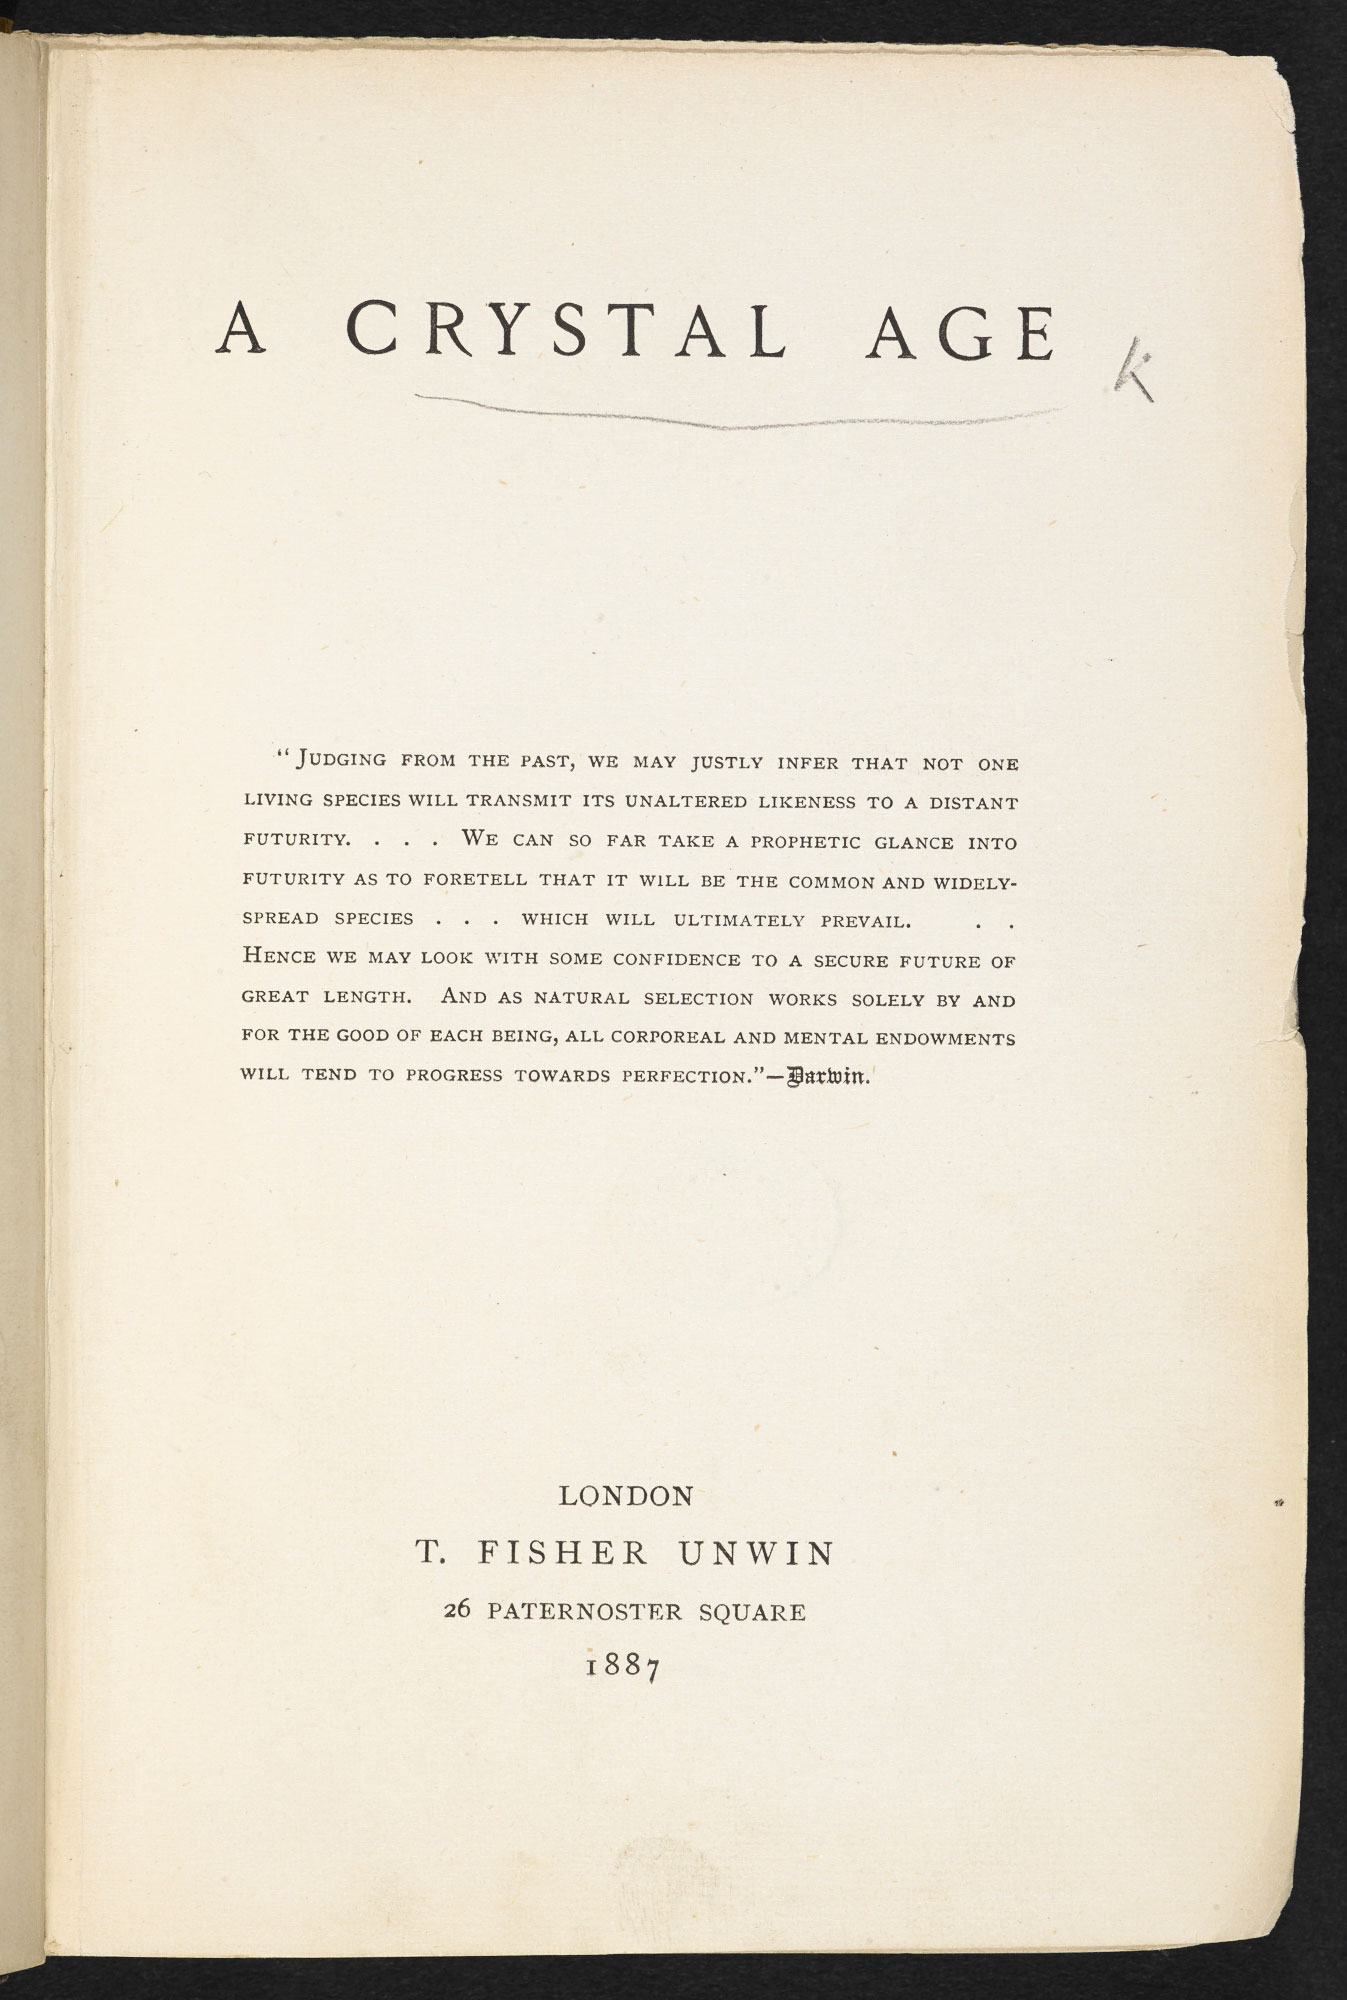 A Crystal Age, a utopian novel